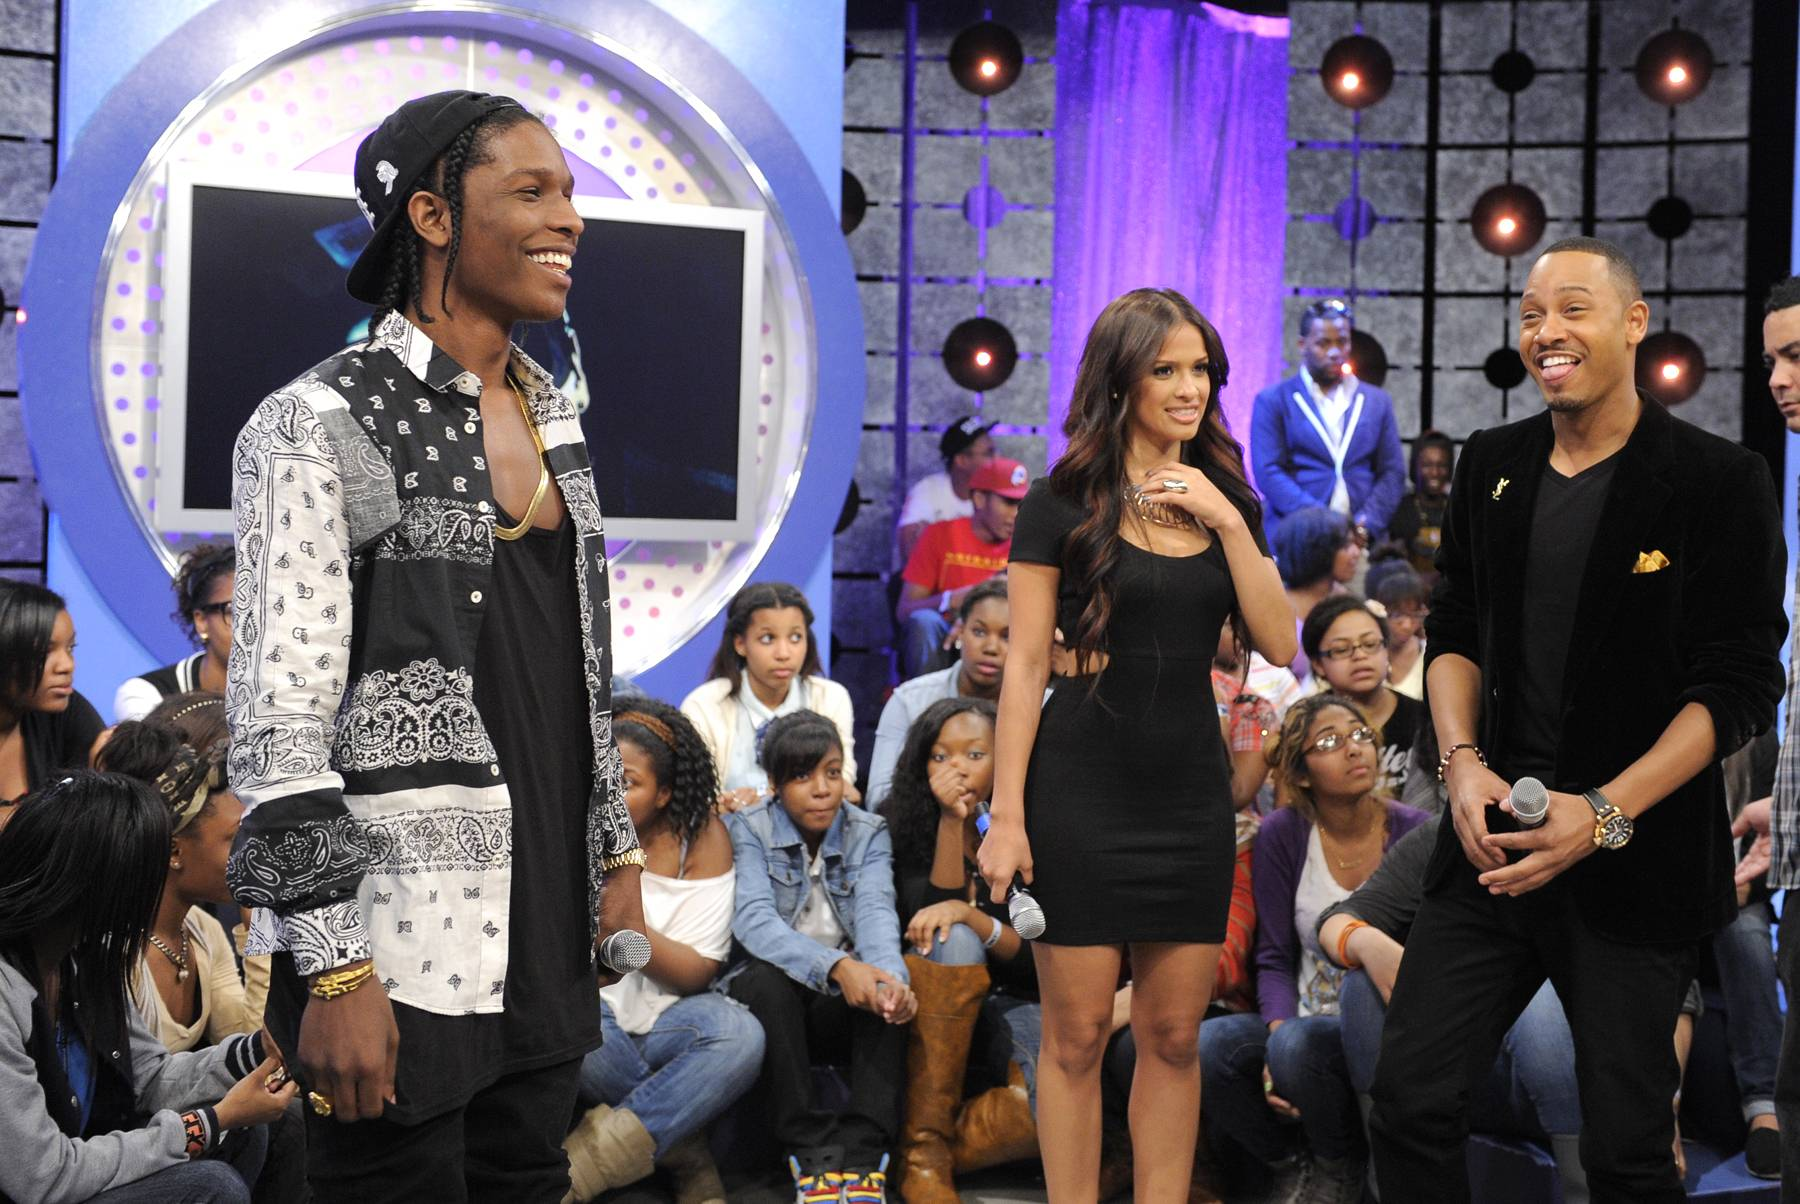 Giving 106 the Nitty Gritty - A$AP Rocky with Rocsi Diaz and Terrence J at 106 & Park, May 22, 2012. (Photo: John Ricard / BET)